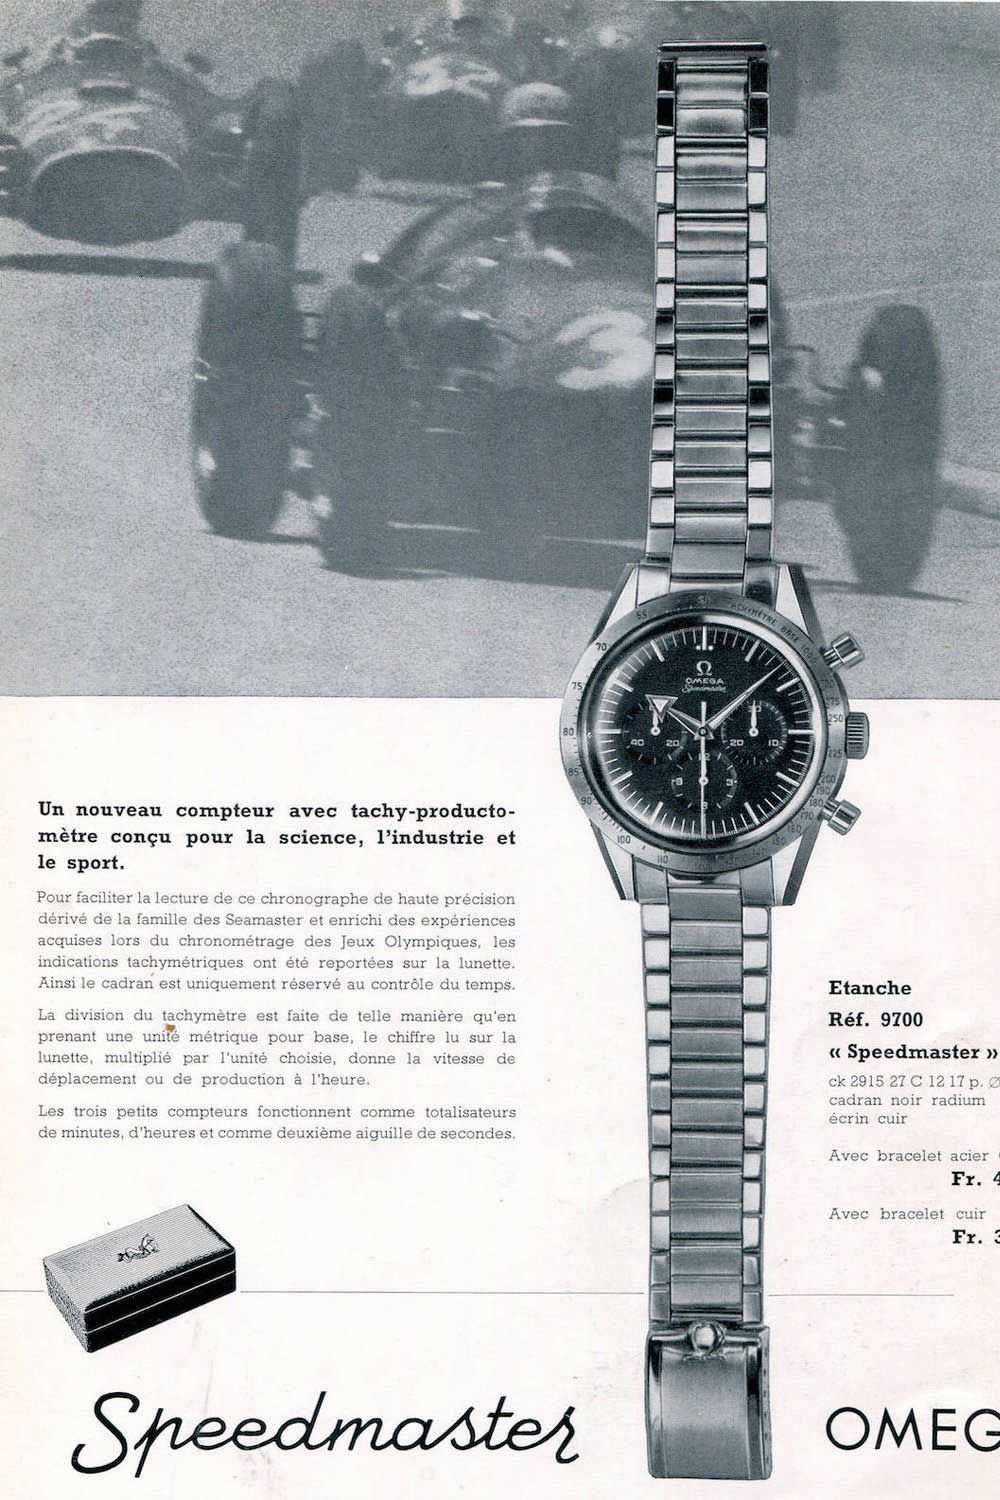 Omega Speedmaster ad for the 1957 CK2915 (Image: omegawatches.com)